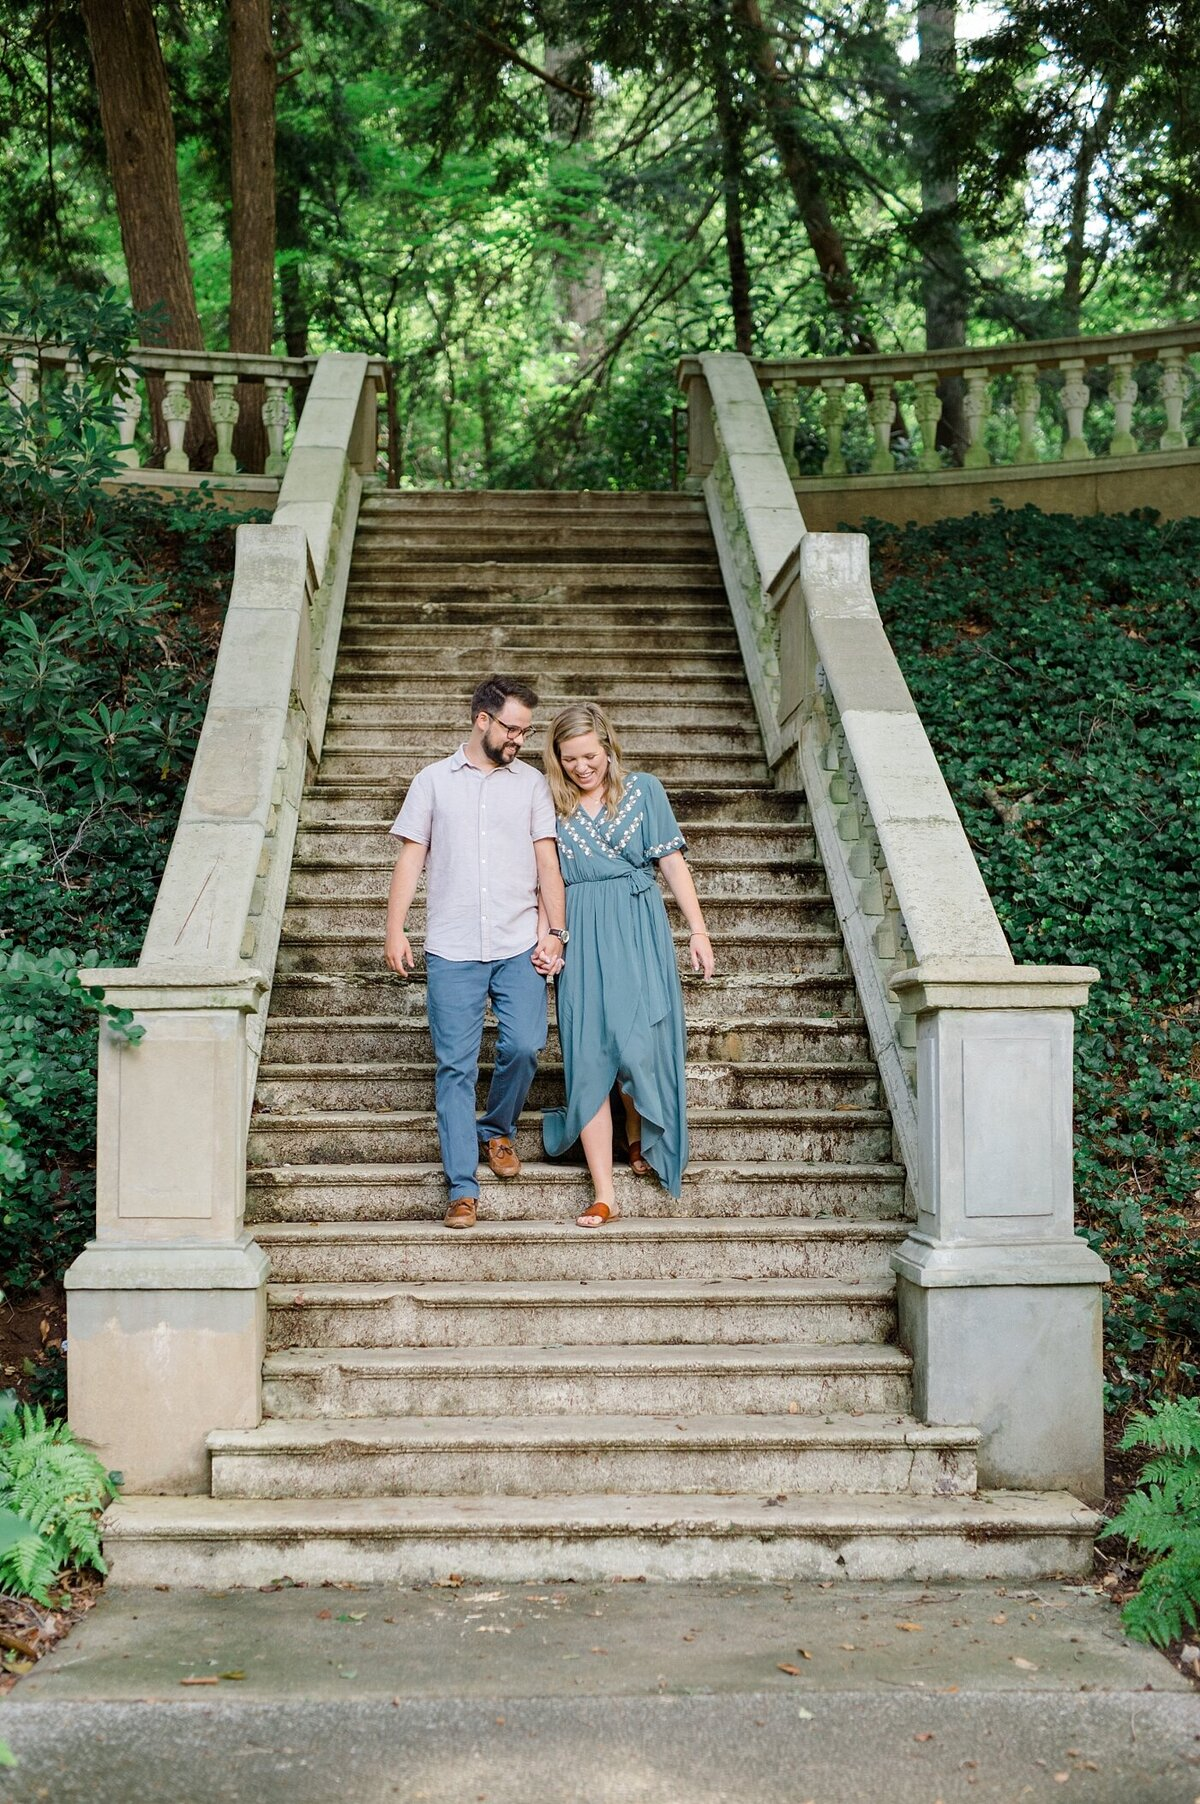 cator-woolford-gardens-engagement-wedding-photographer-laura-barnes-photo-shackelford-15